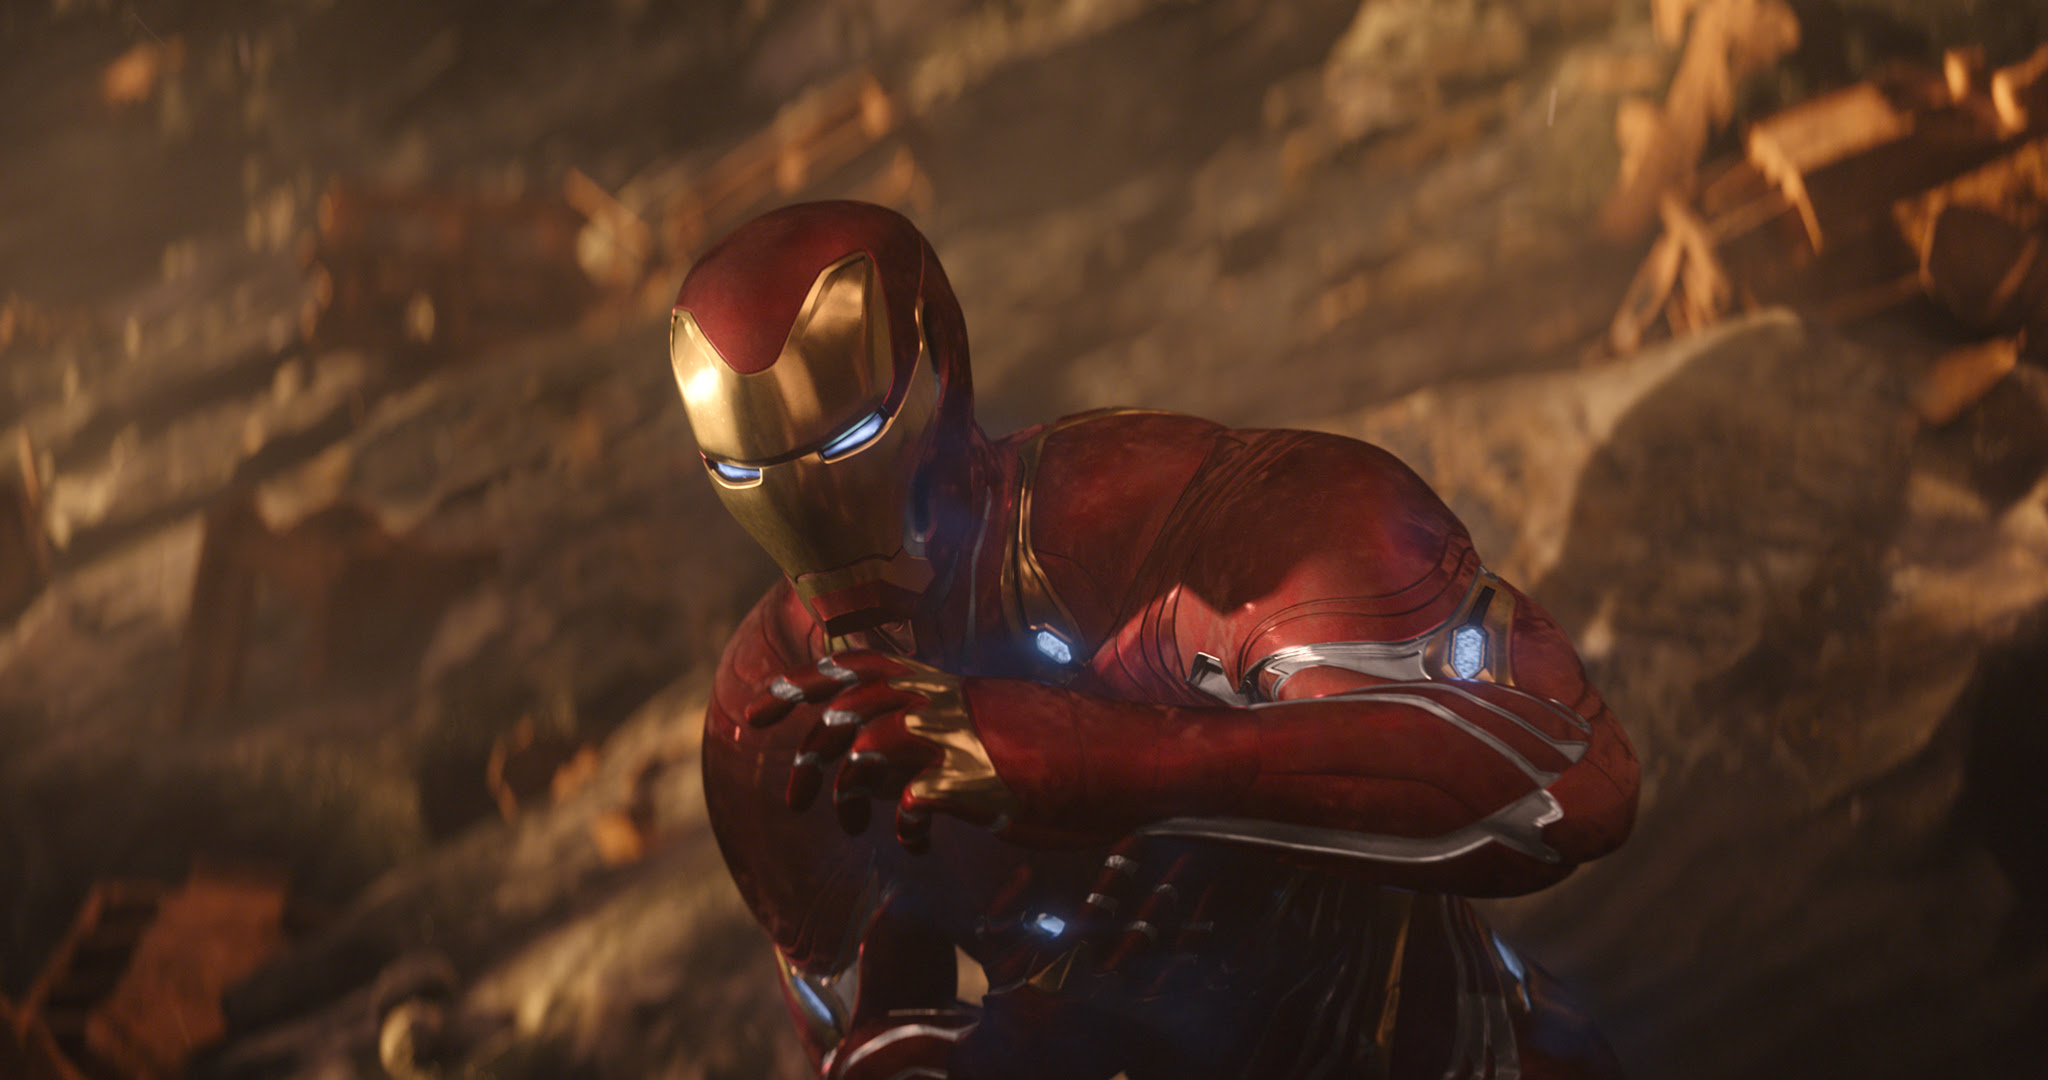 Iron Man New Suit For Avengers Infinity War 2018, HD Movies, 4k Wallpapers, Images, Backgrounds